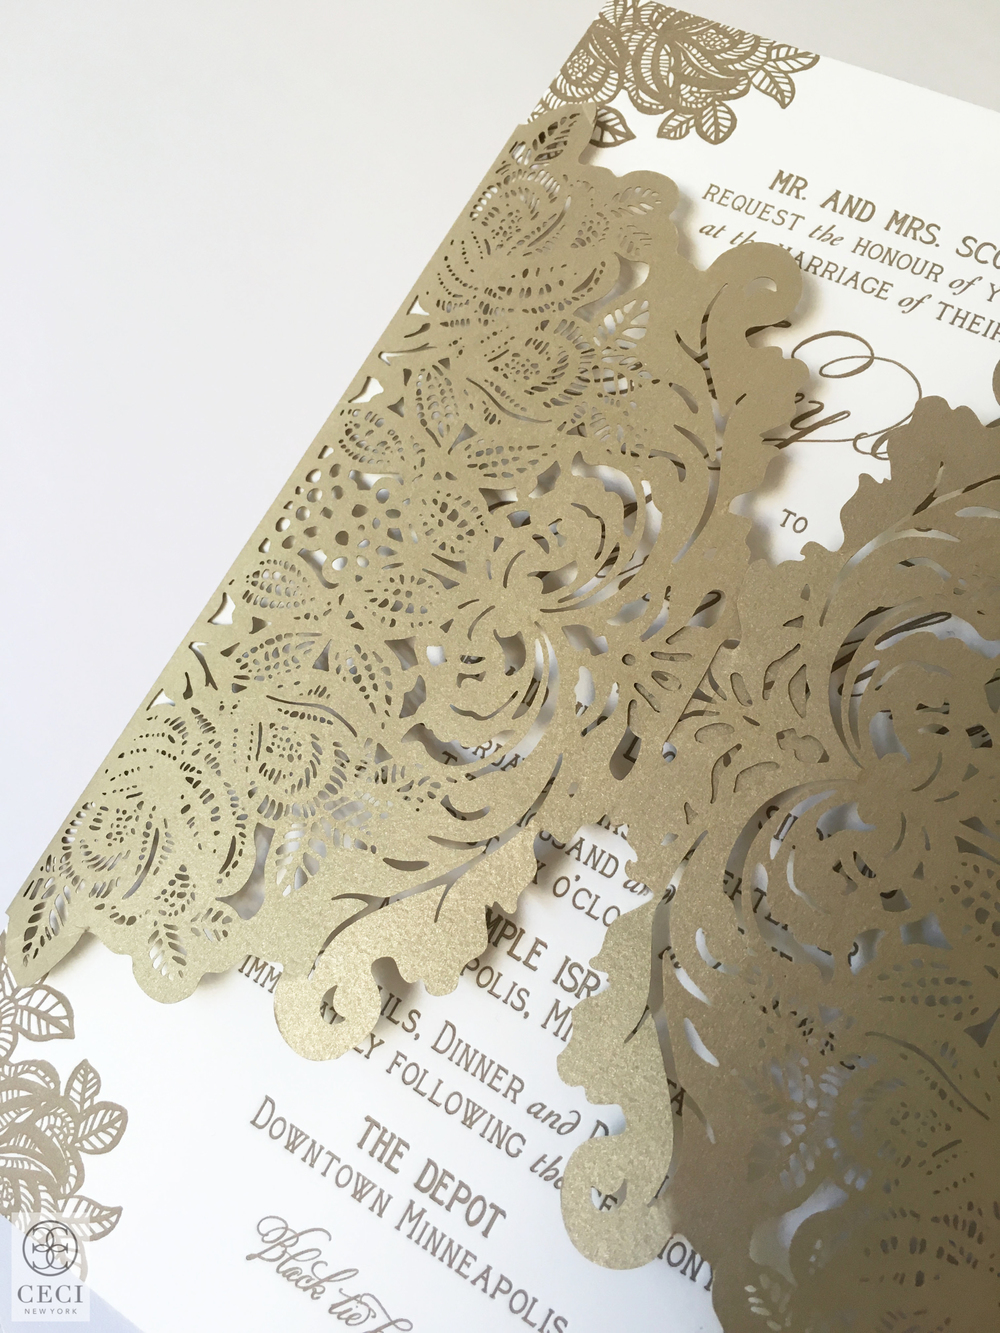 Ceci_New_York_Ceci_Style_Ceci_Johnson_Luxury_Lifestyle_Floral_Lace_Wedding_Letterpress_Inspiration_Design_Custom_Couture_Personalized_Invitations_-13.jpg